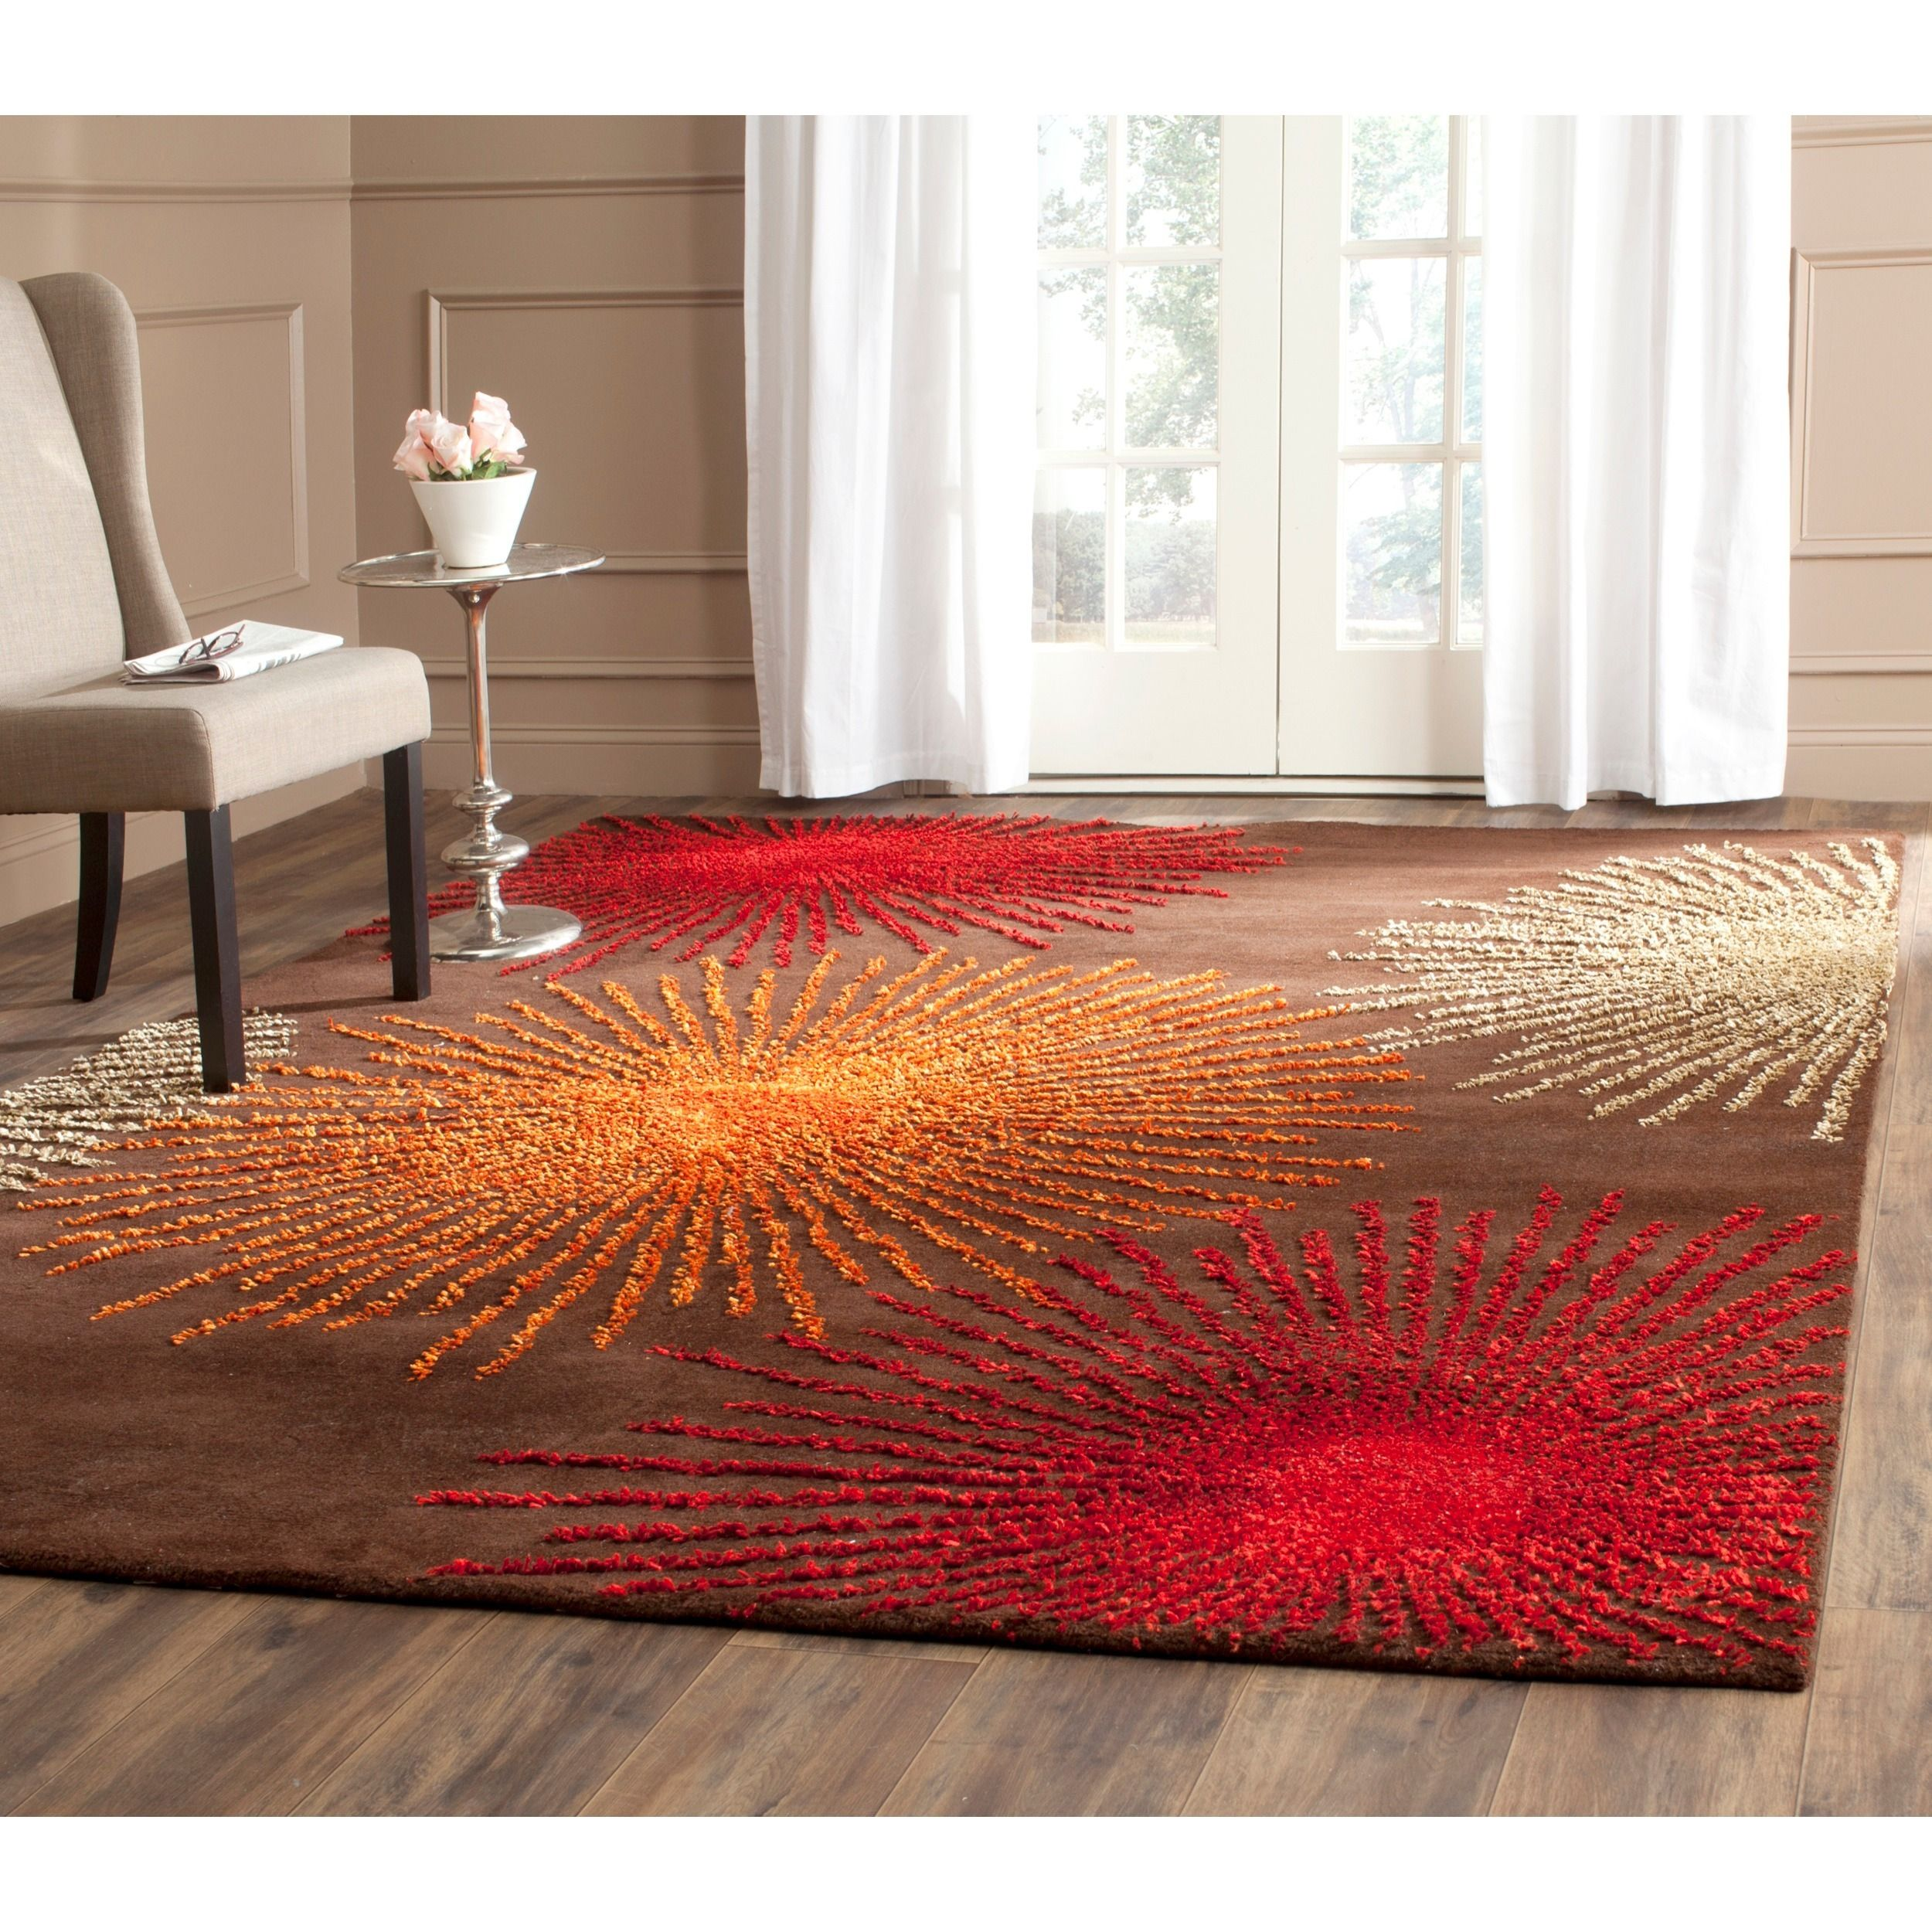 Overstock Com Online Shopping Bedding Furniture Electronics Jewelry Clothing More Handmade Area Rugs Wool Area Rugs Brown Area Rugs